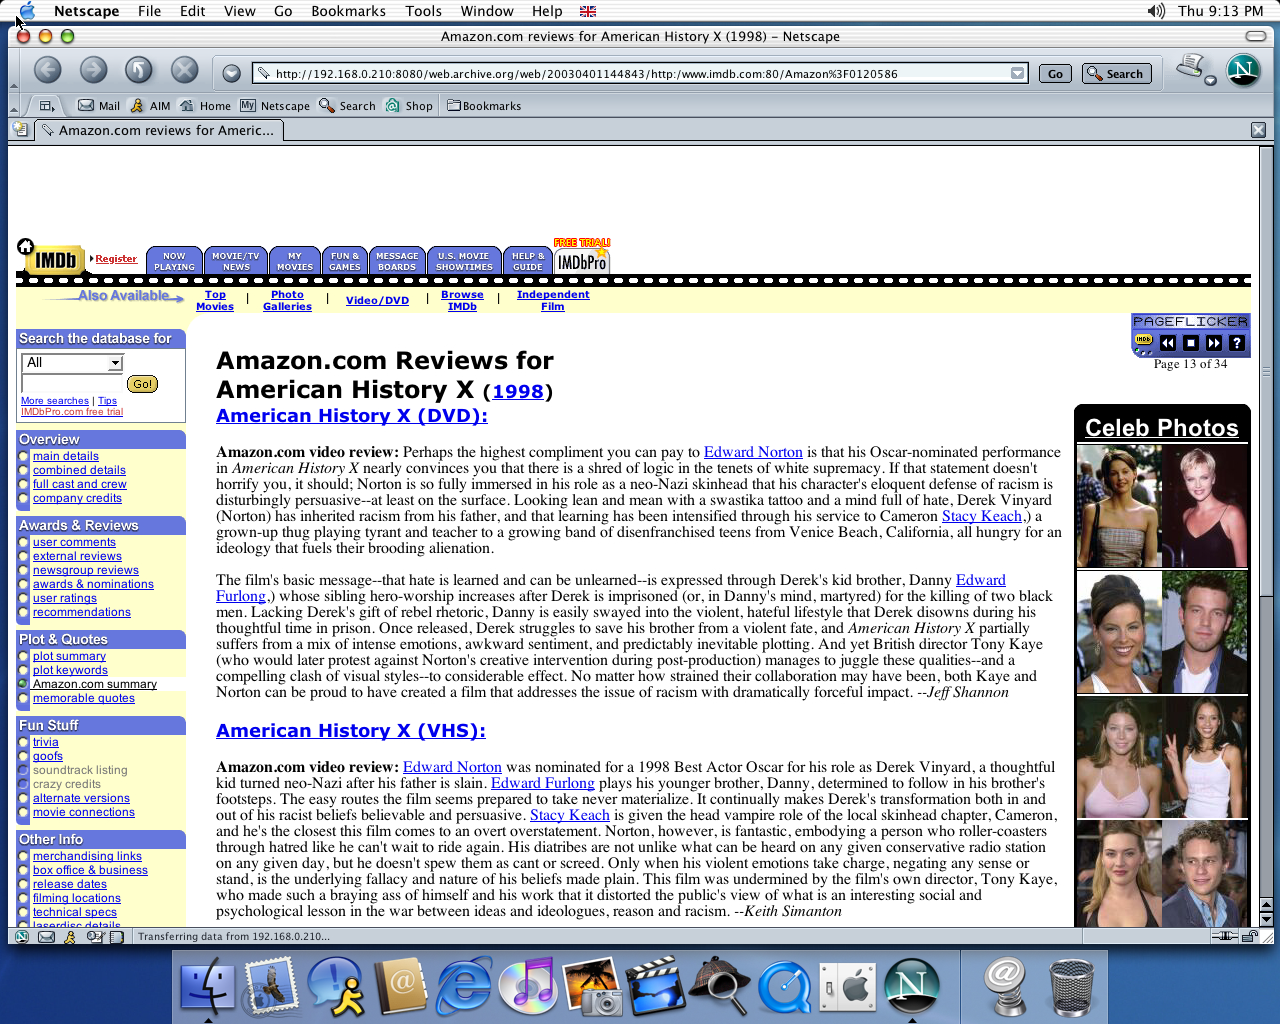 OS X 10.2 PPC with Netscape 7.0 displaying a page from IMDB archived at April 01, 2003 at 14:48:43